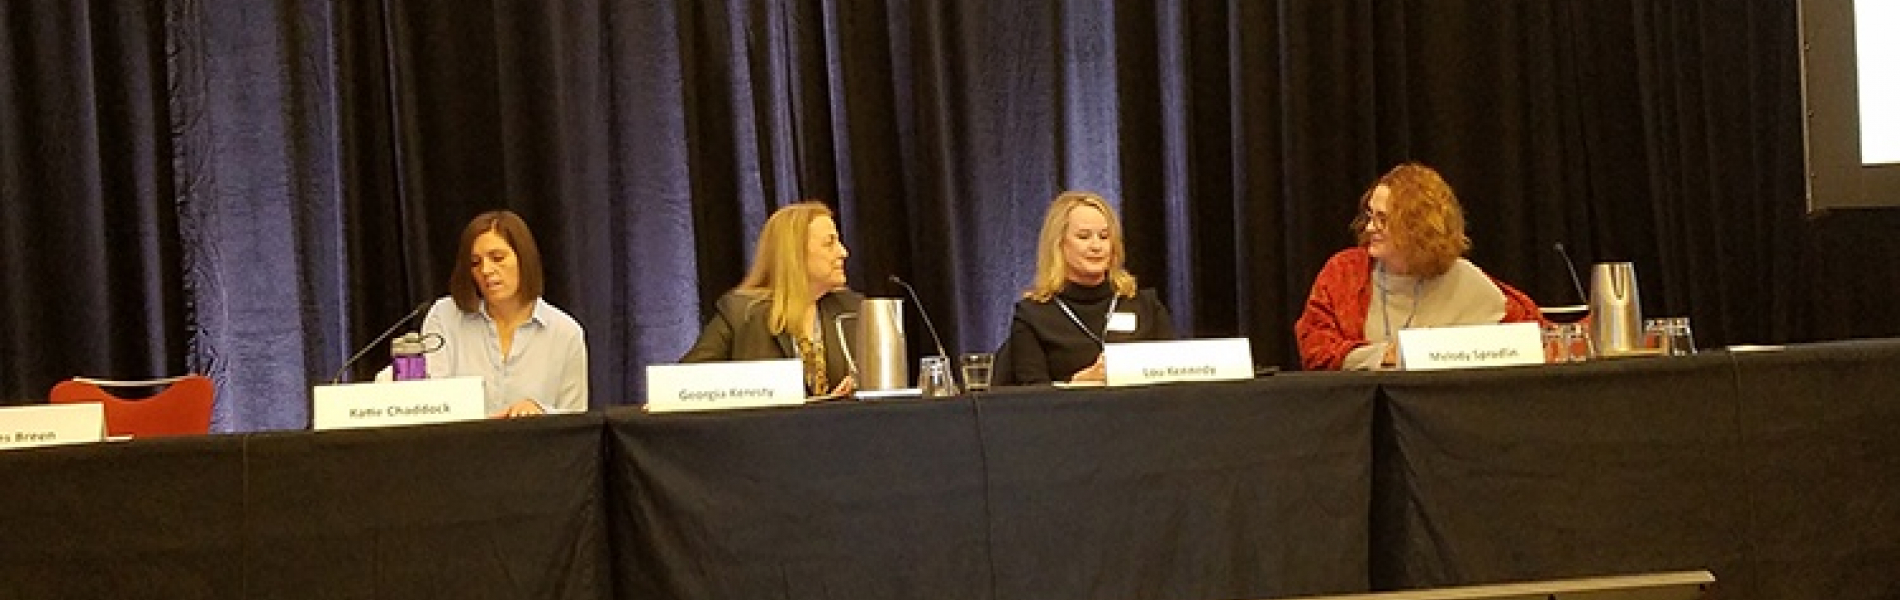 Women in Pharma®: pannel